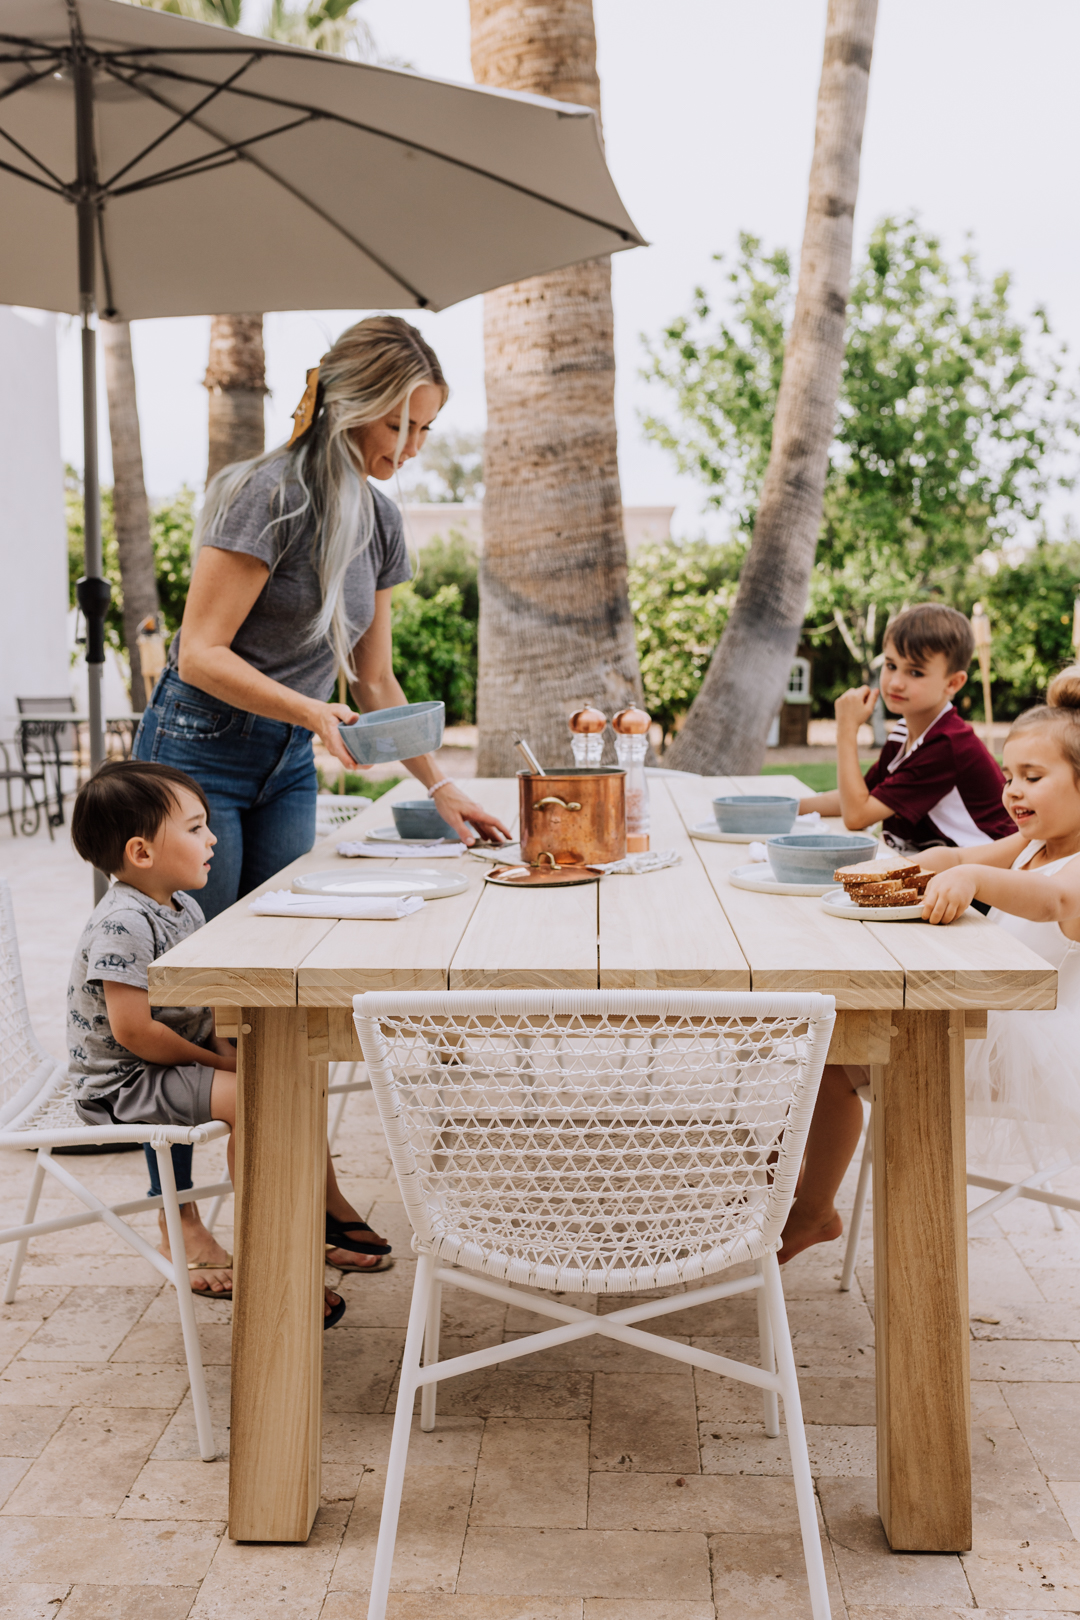 eating dinner al fresco is where it's at in the spring in arizona! | thelovedesignedilf.com #outdooreating #spendidspoon #familydinner